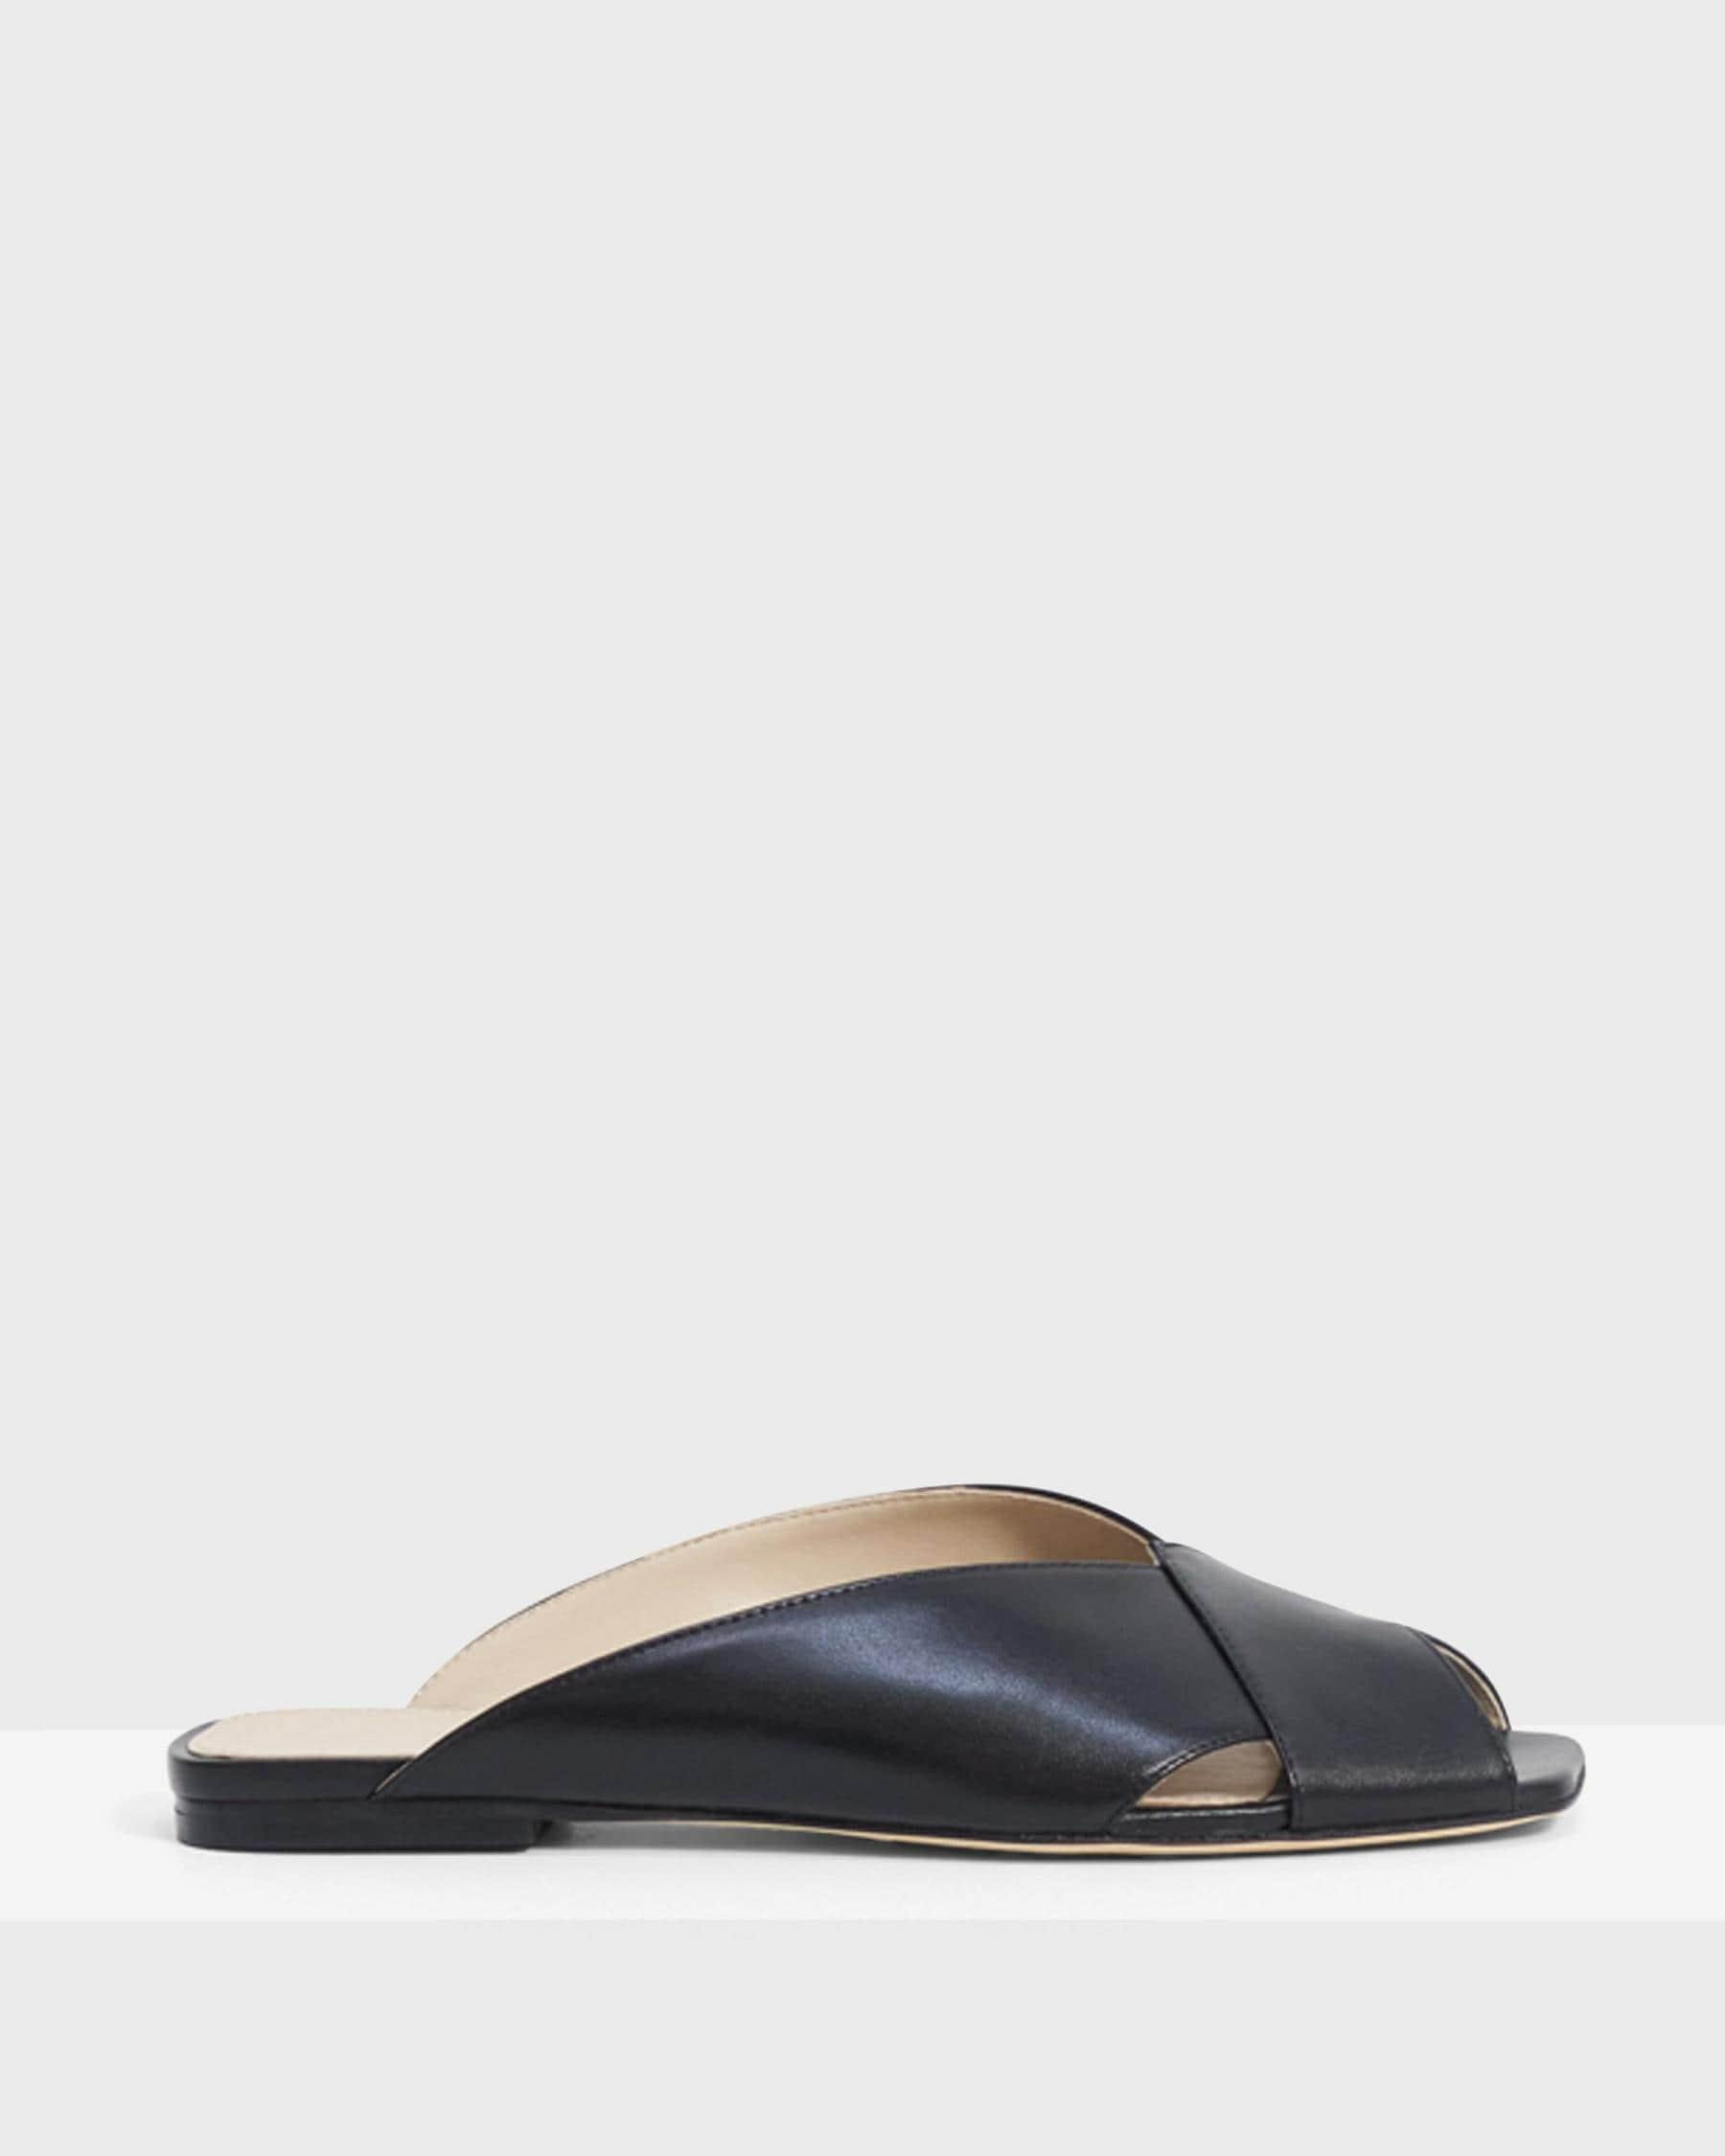 V Flat Mule in Leather 5